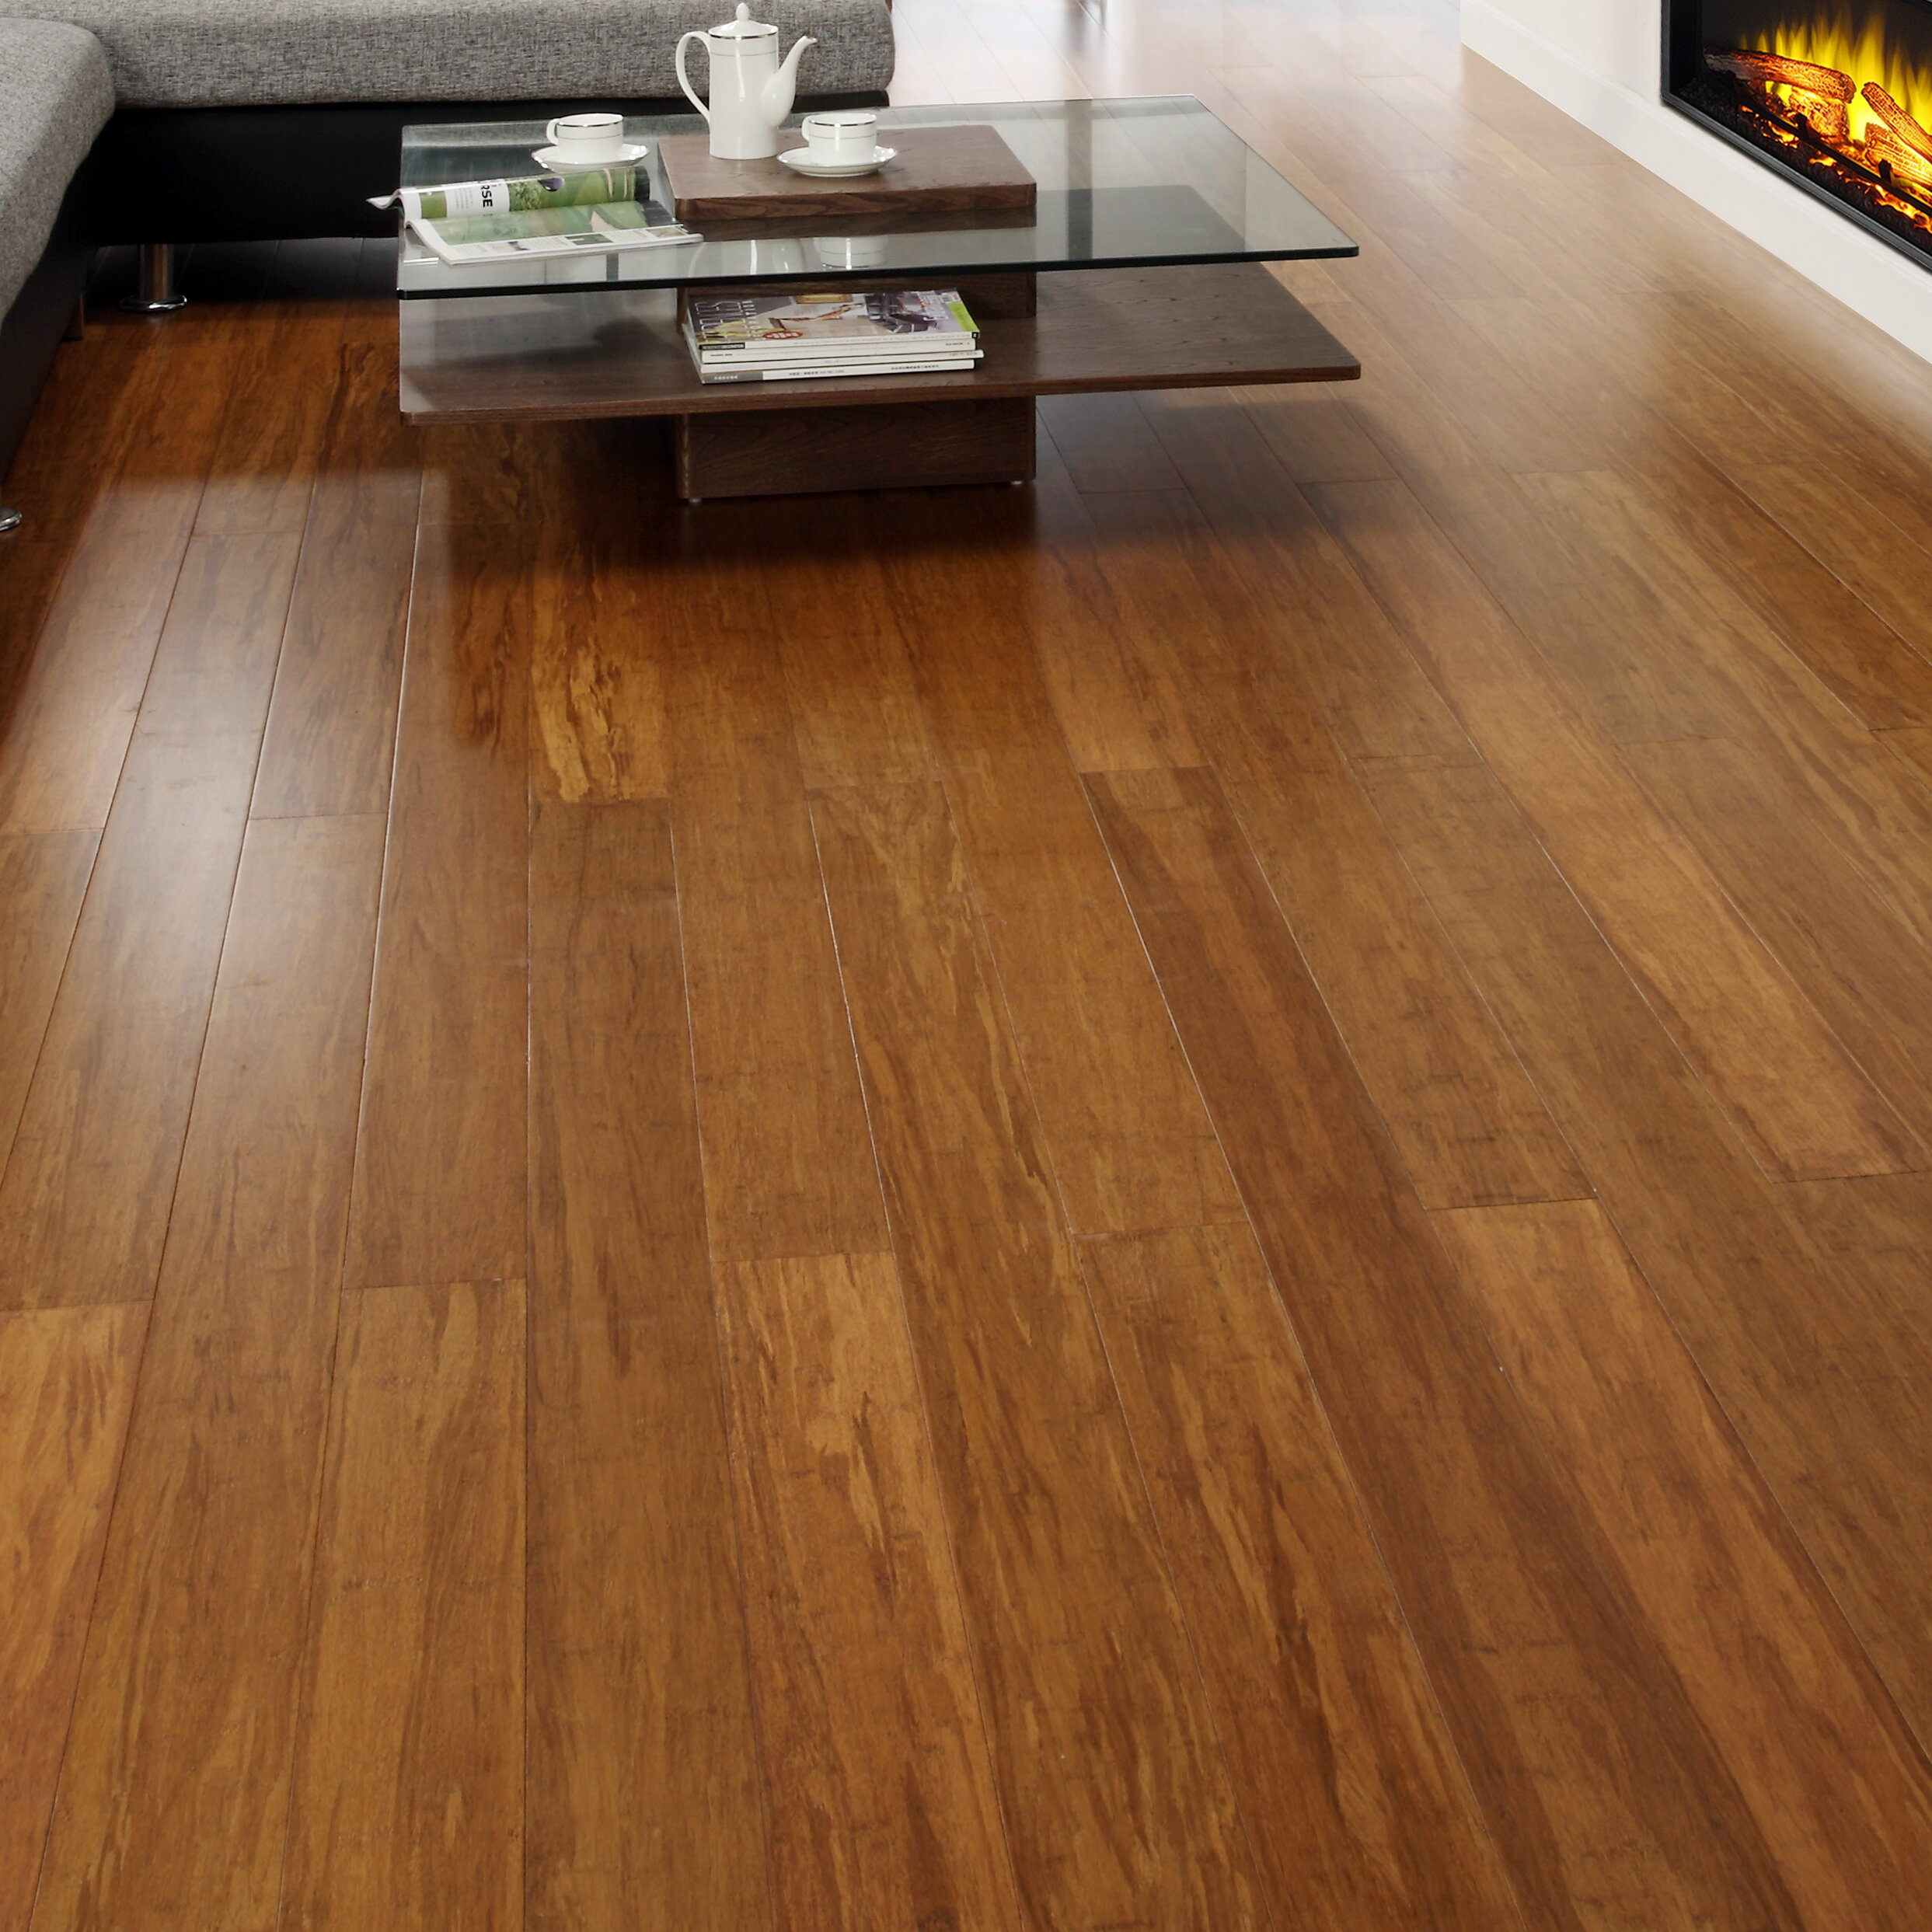 Bamboo flooring distributors usa floor matttroy for Bamboo flooring manufacturers usa